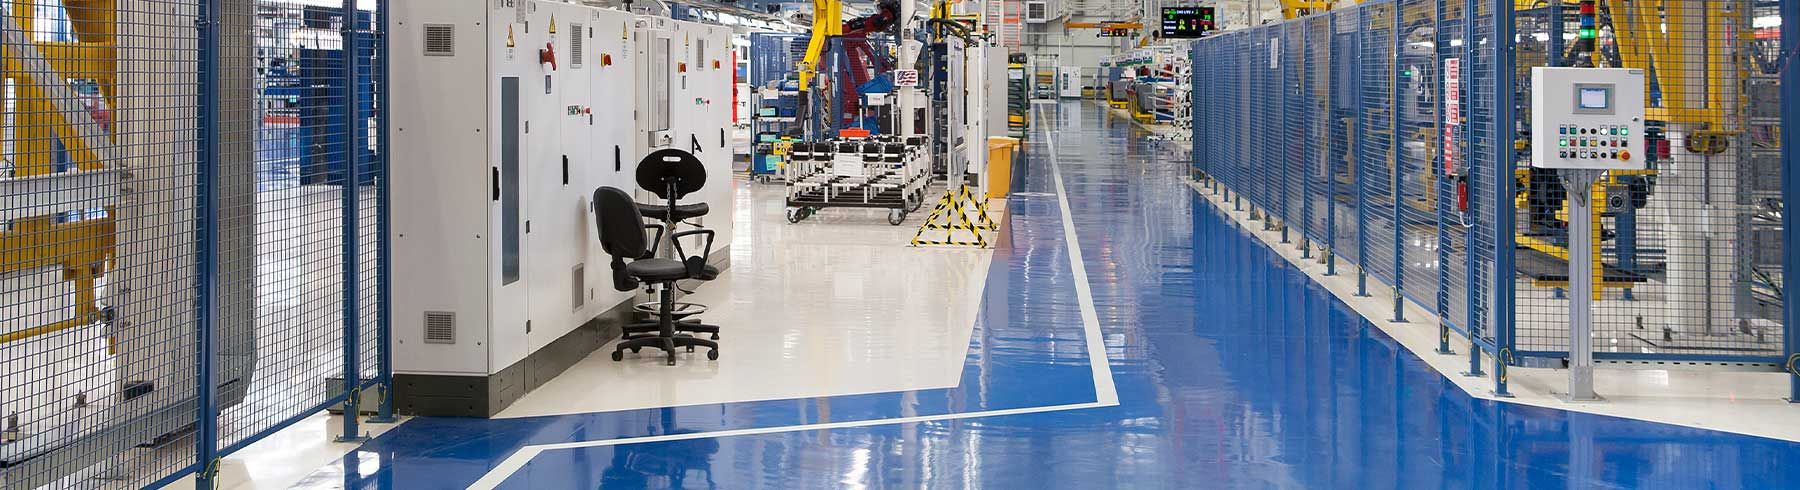 manufacturing facility floor coating